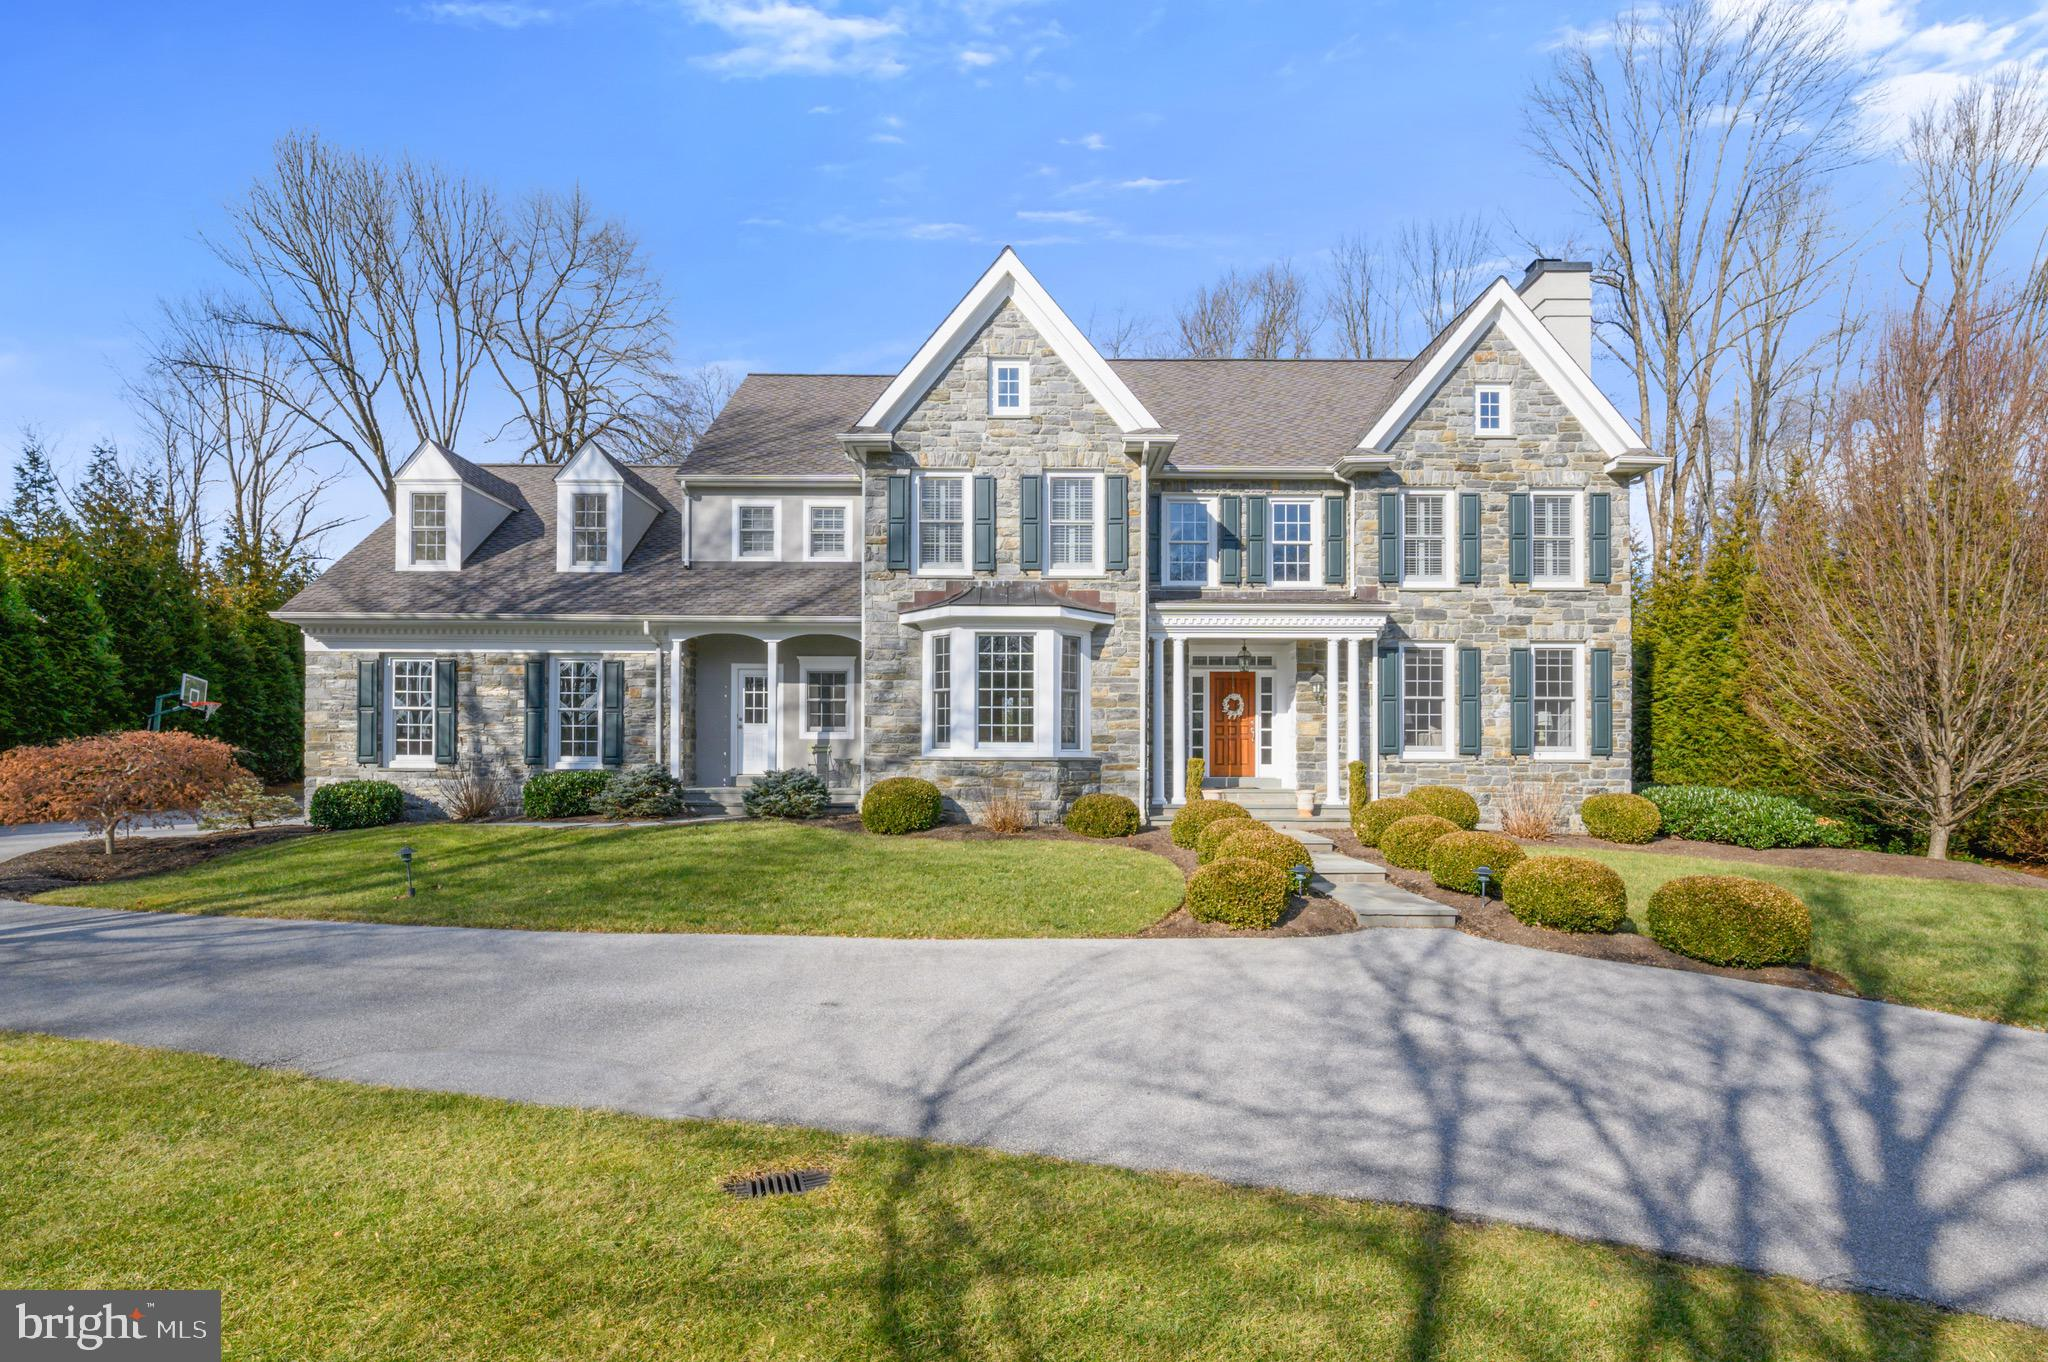 333 EXETER ROAD, DEVON, PA 19333